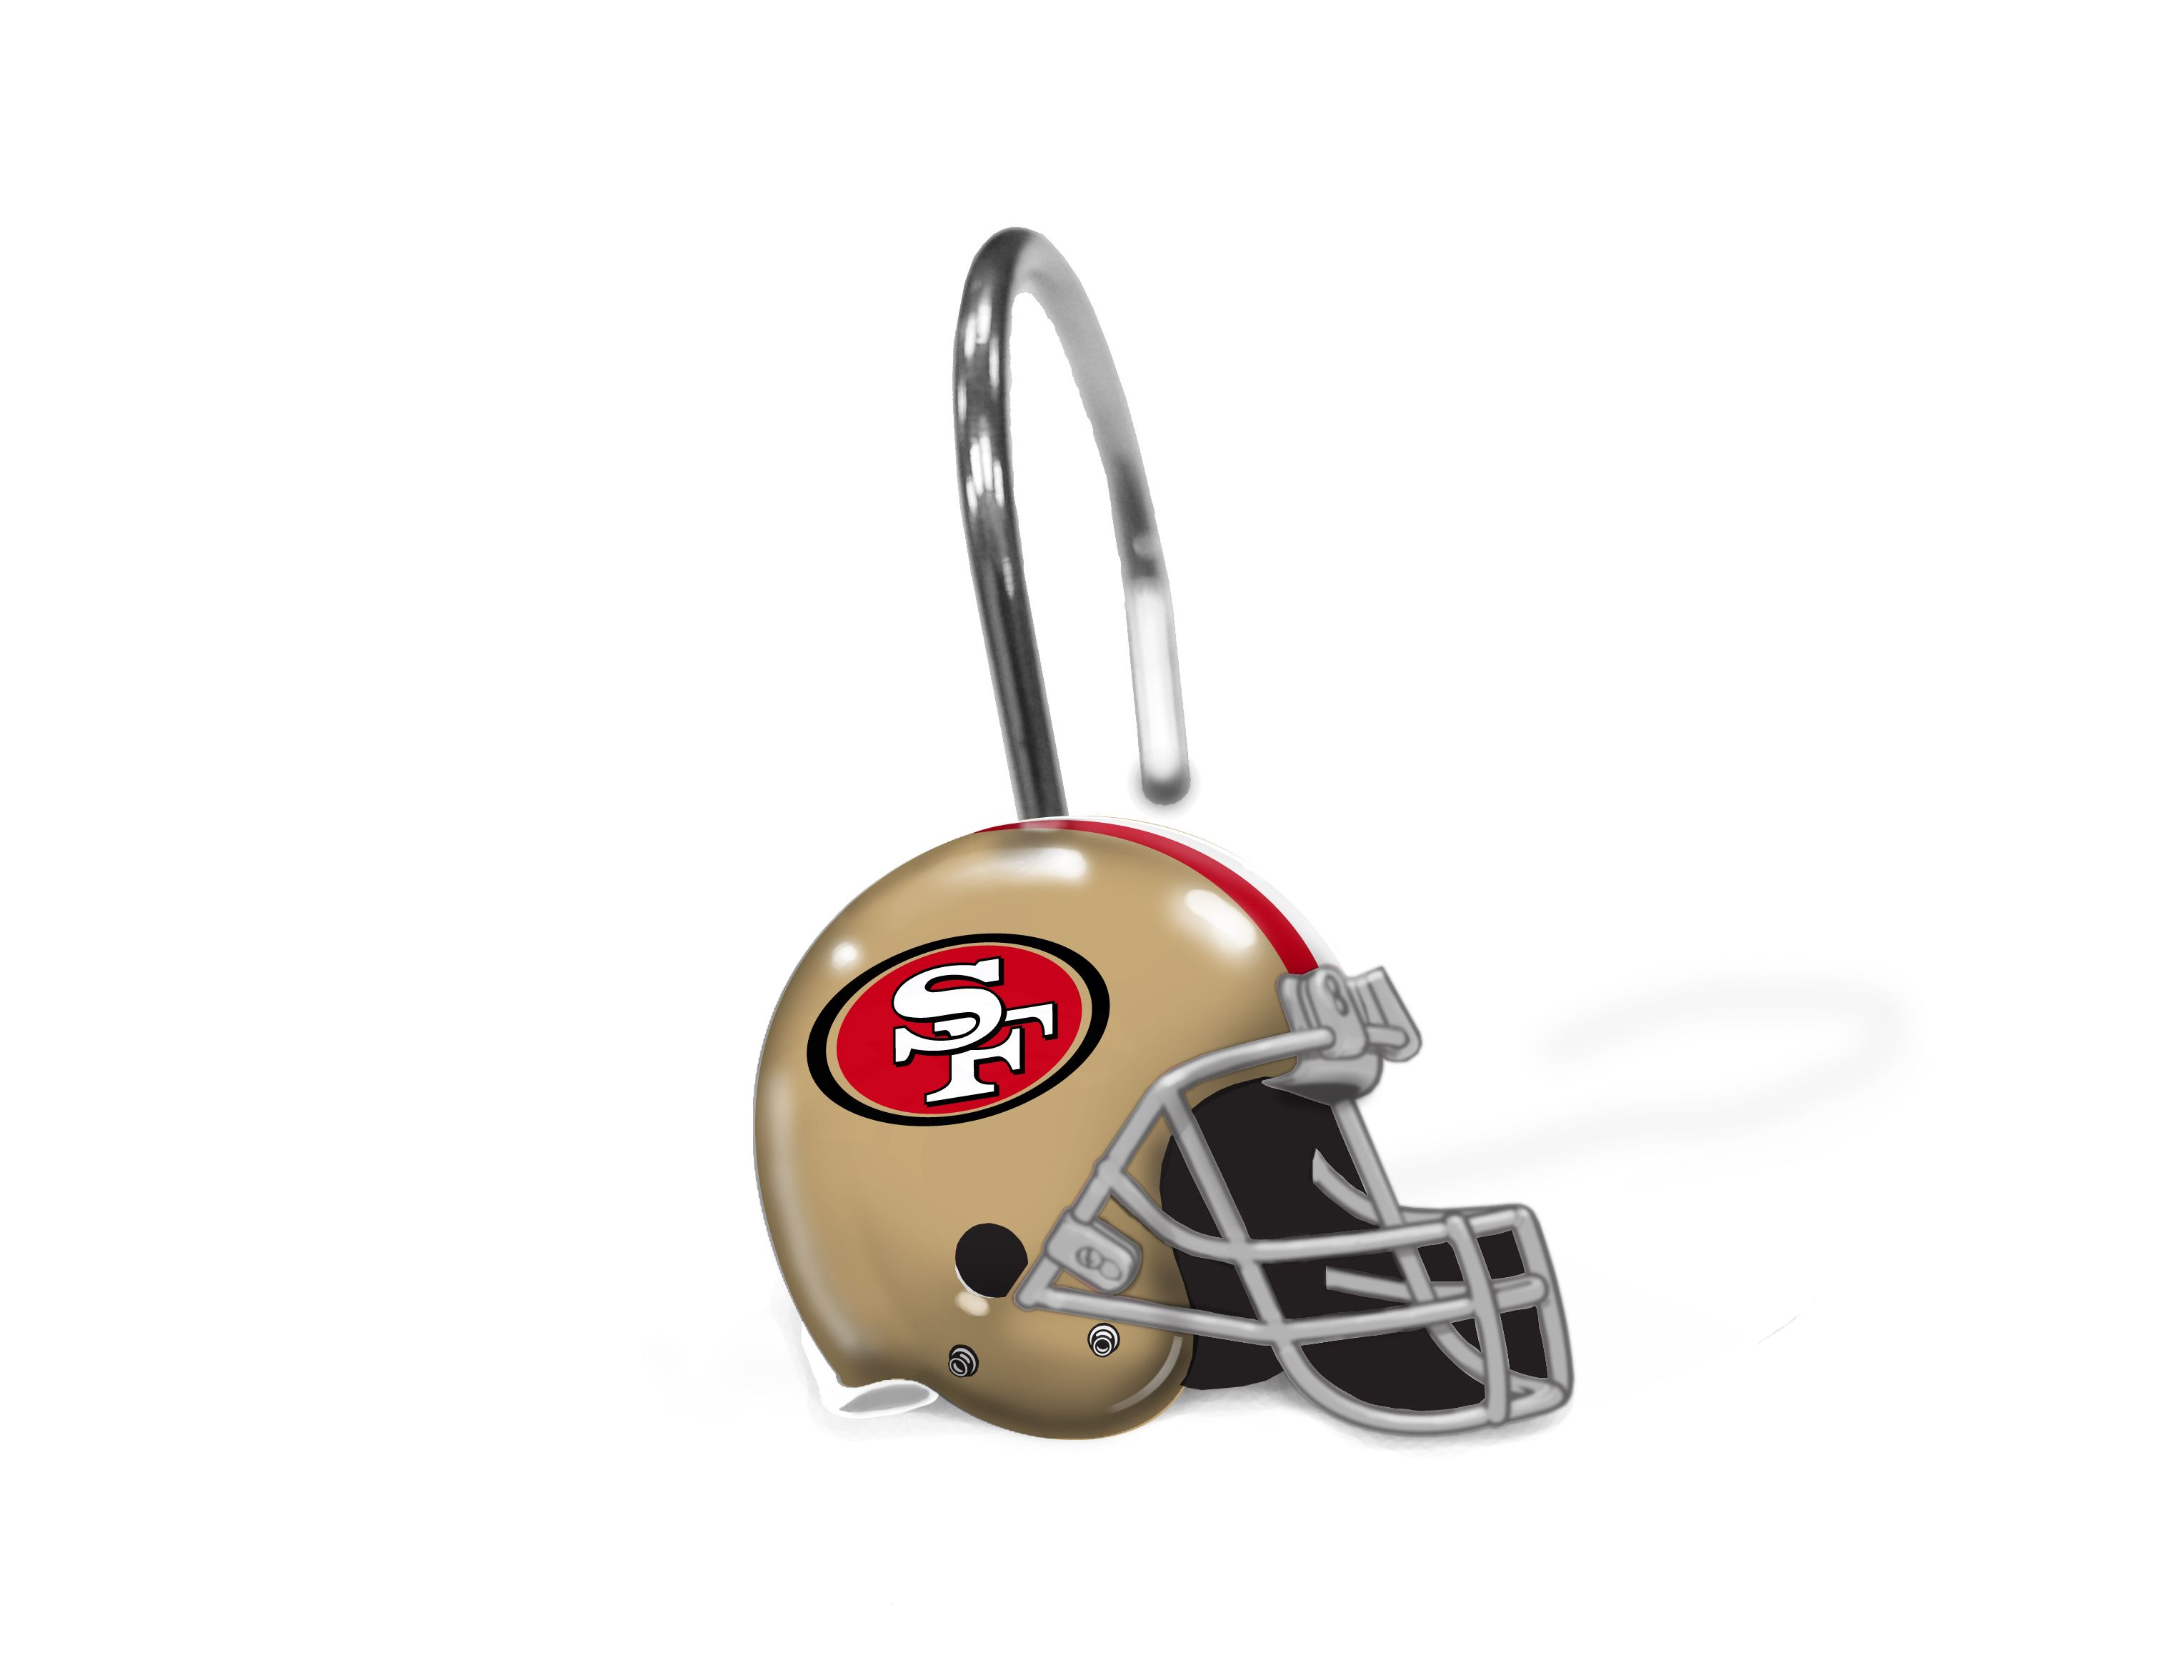 49ers Shower Curtain Rings 12 Rings Per Box 1 Shower Curtain